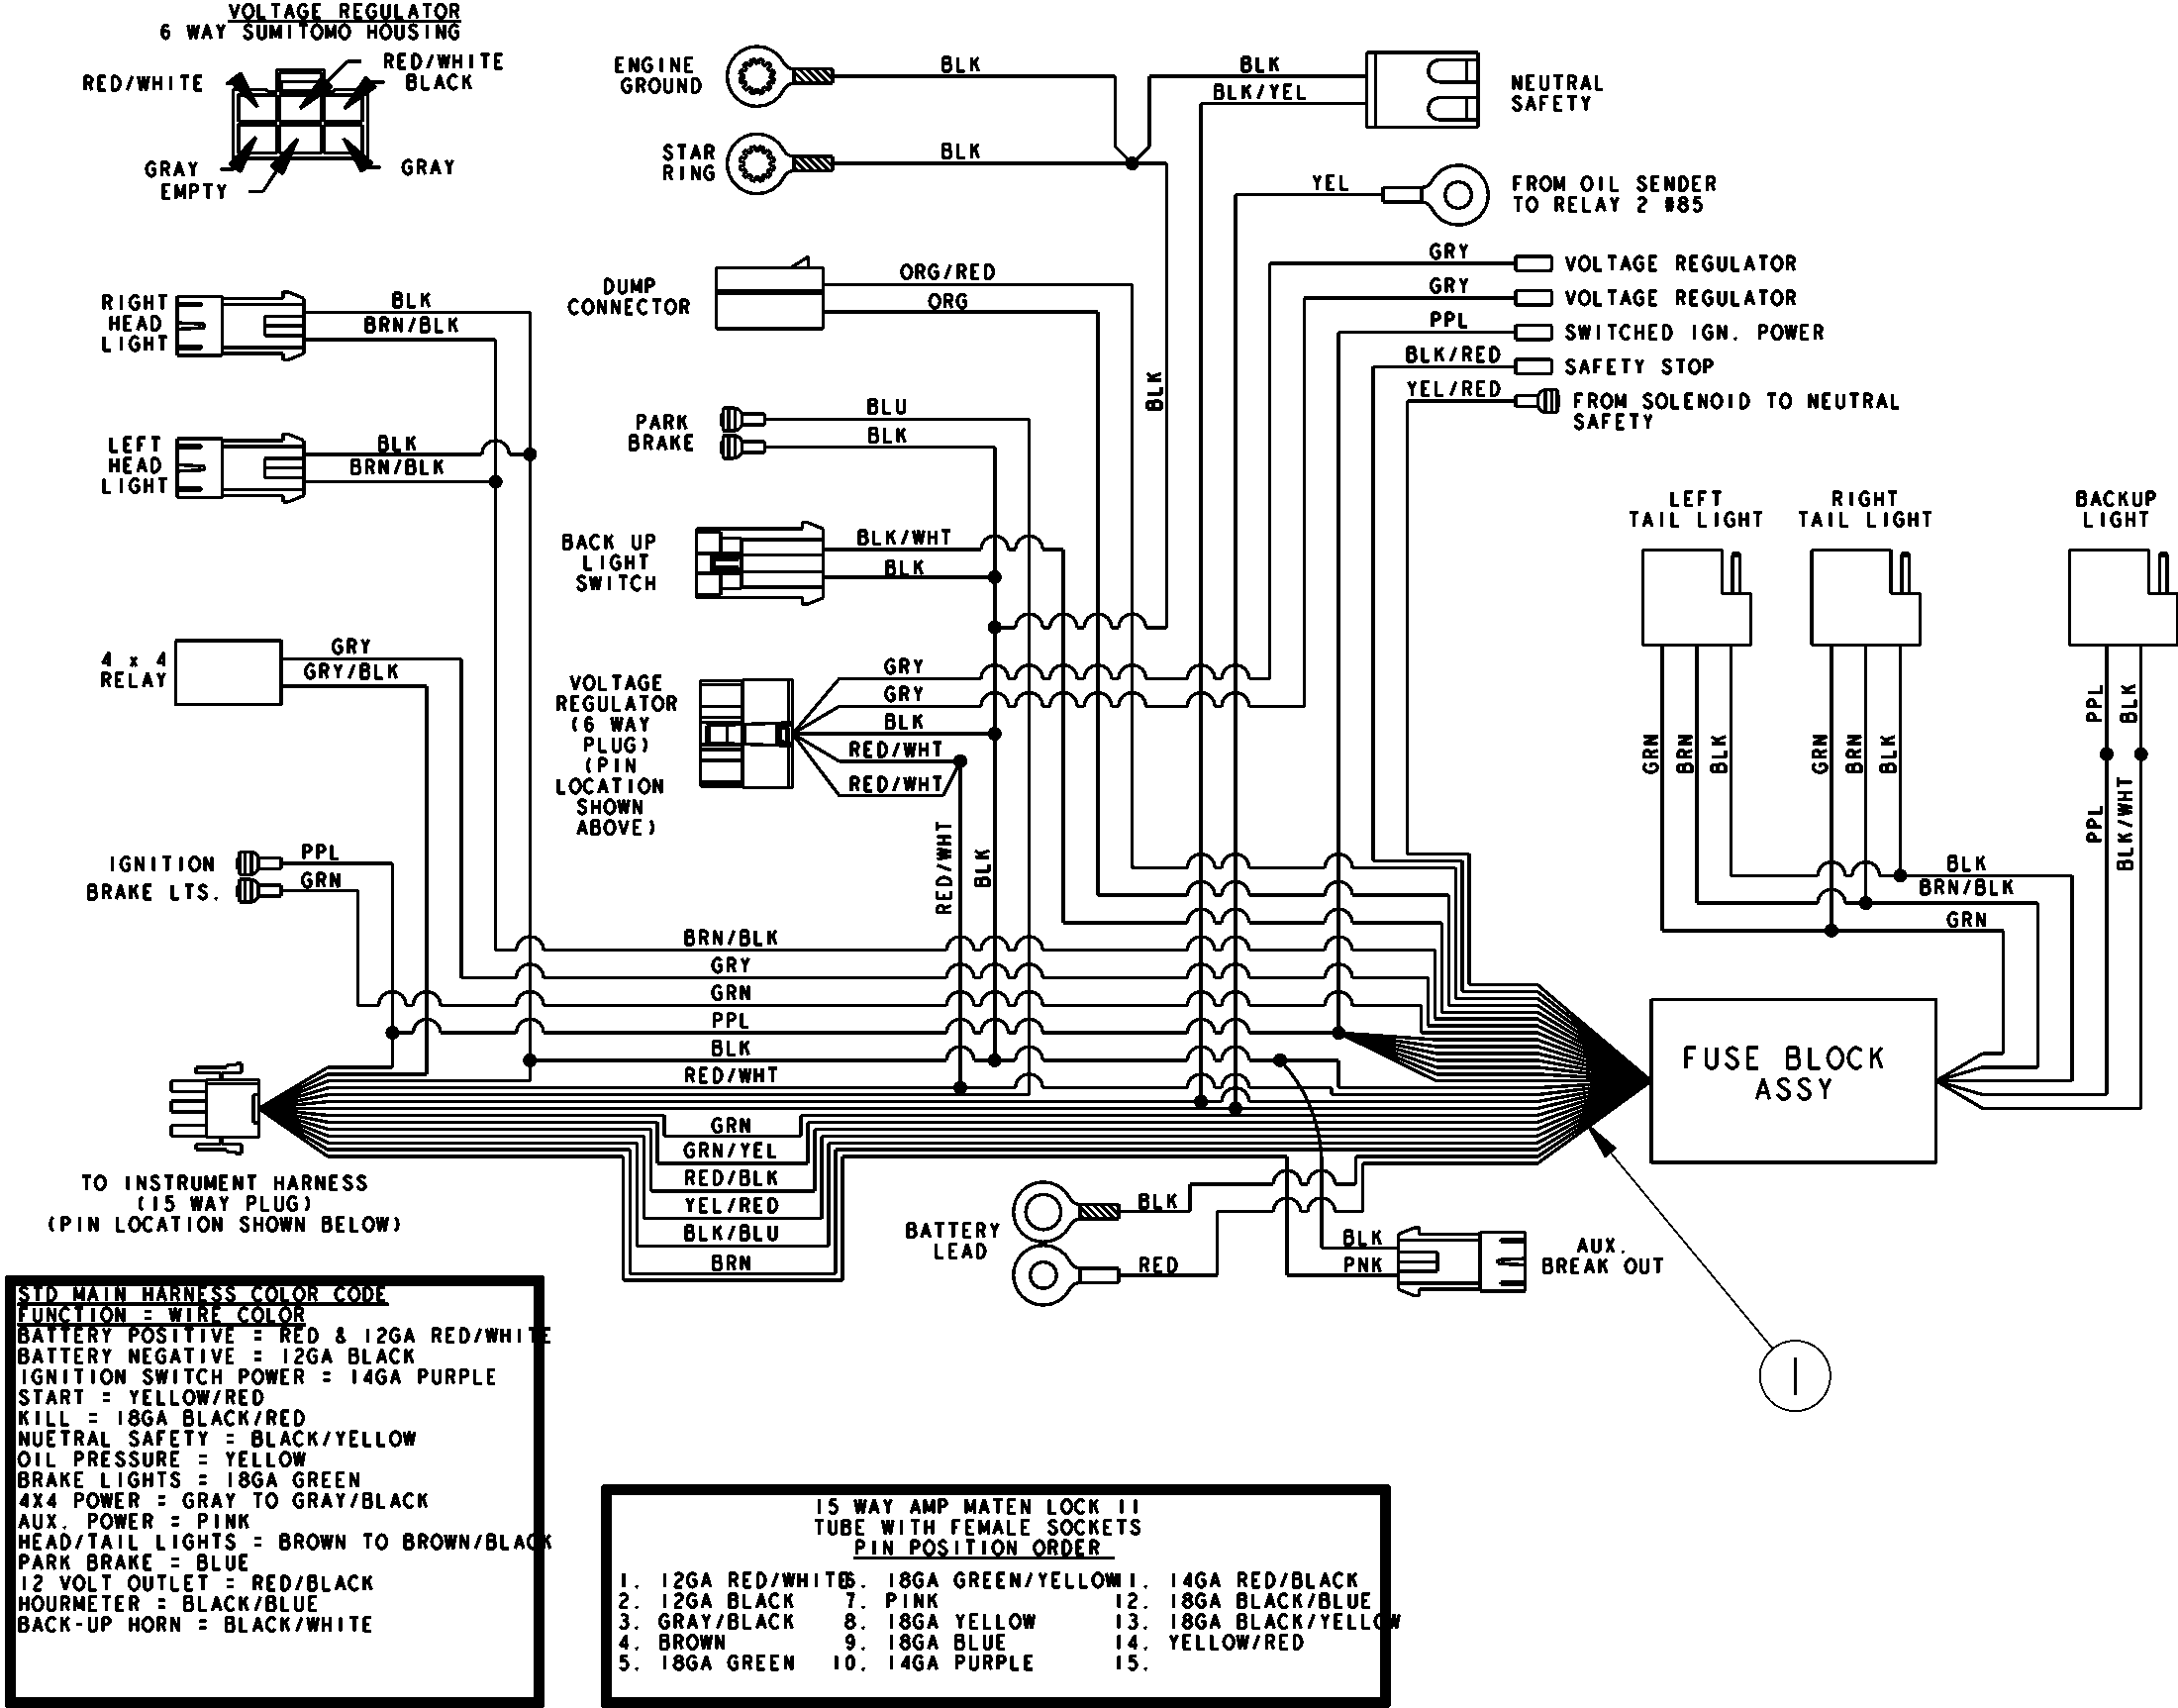 Land Pride Treker 4400st Vehicle Electrical Wiring Schematic Main Diagram Of Auto Hover Over Image For Expanded View